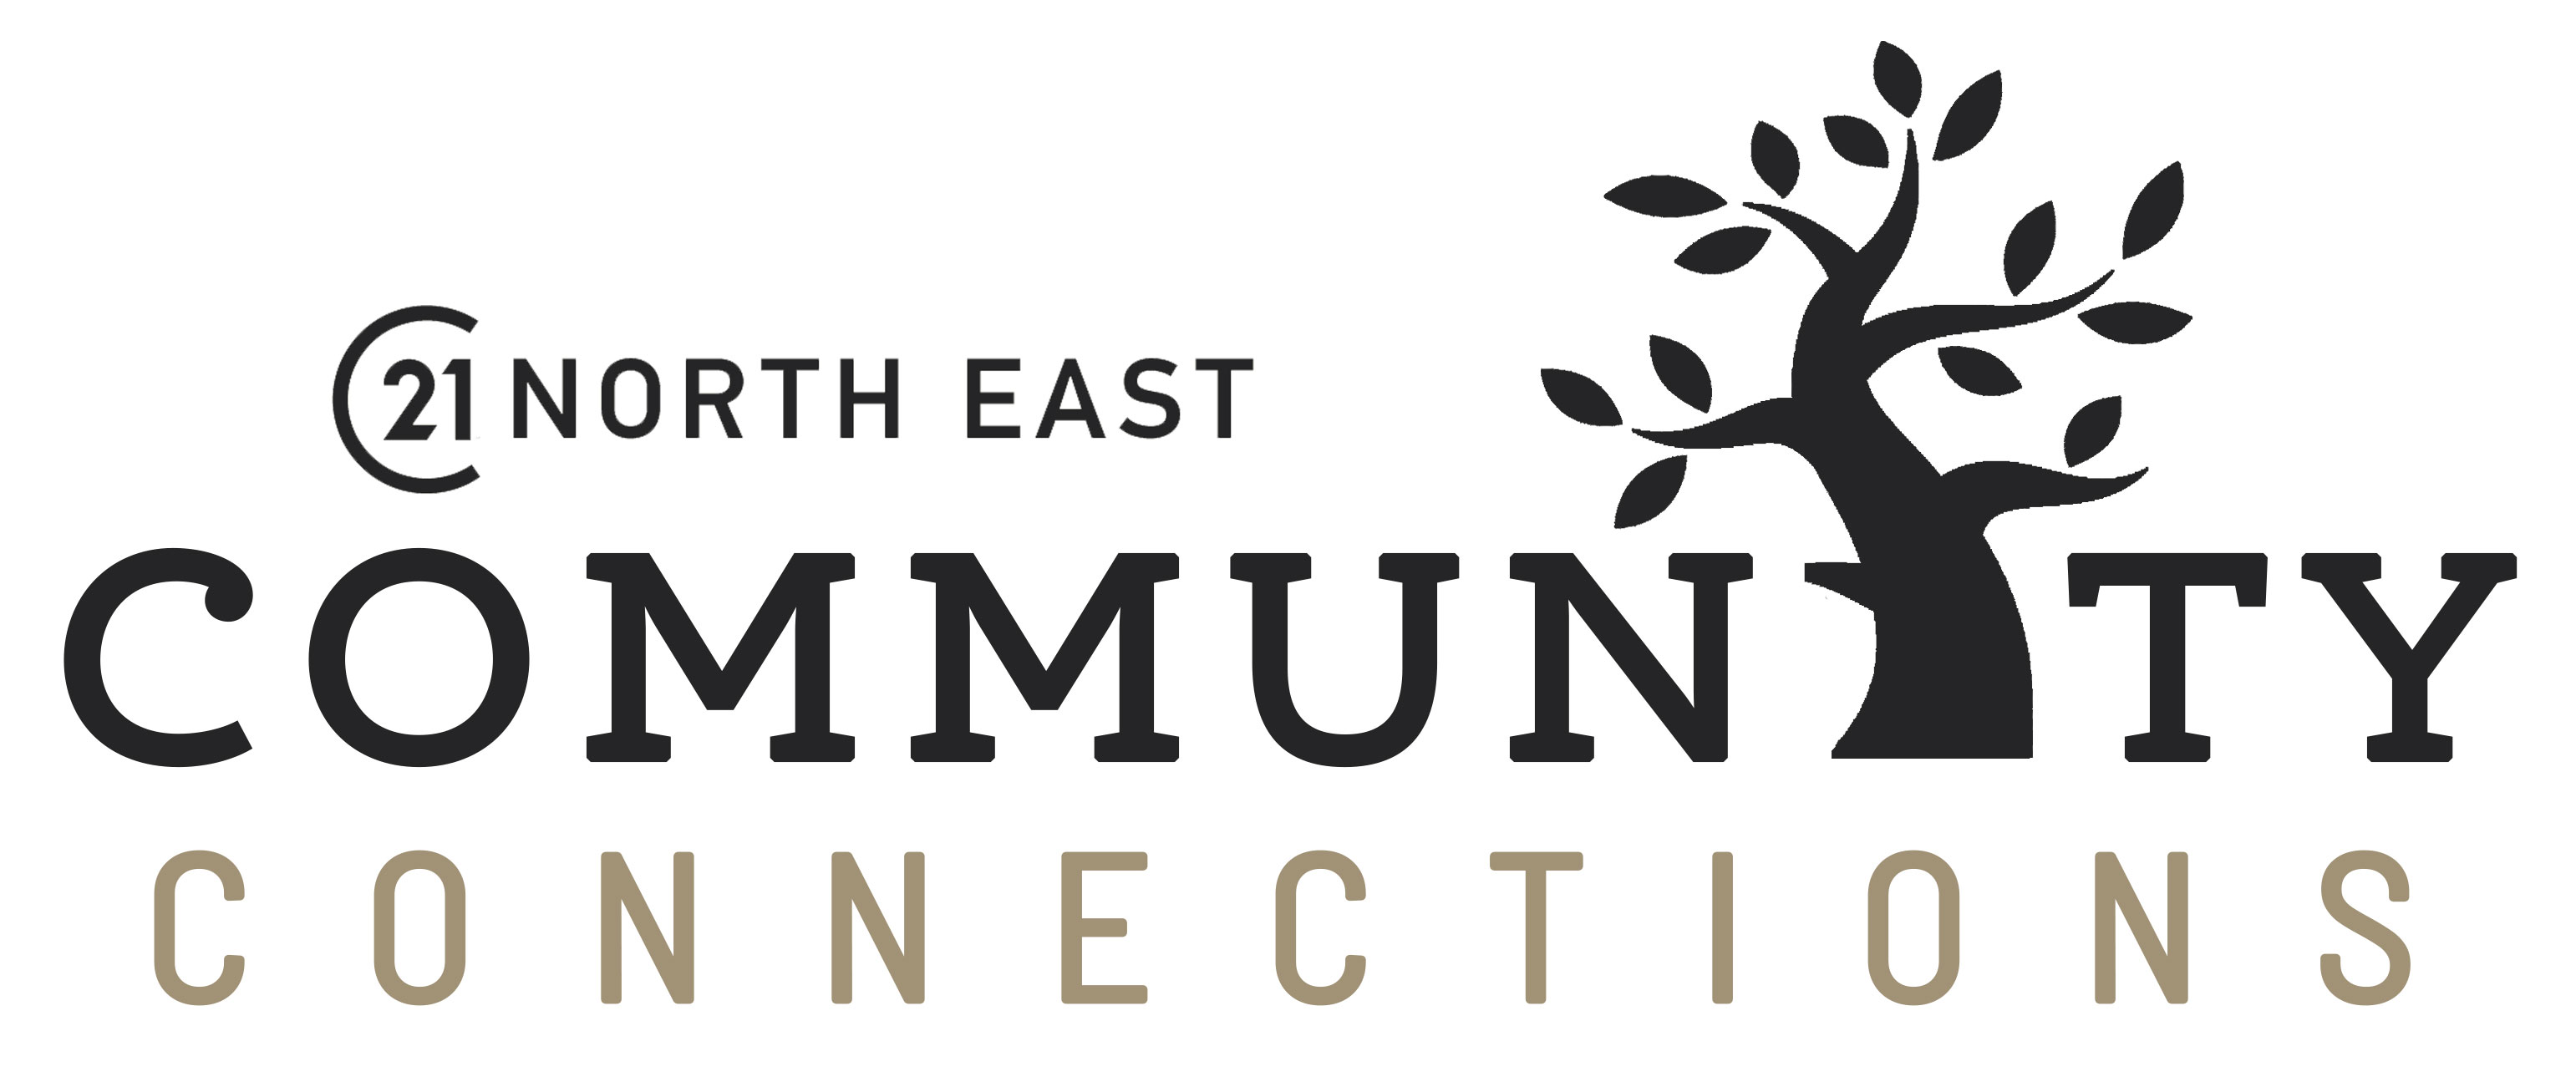 CENTURY 21 Community Connections Logo